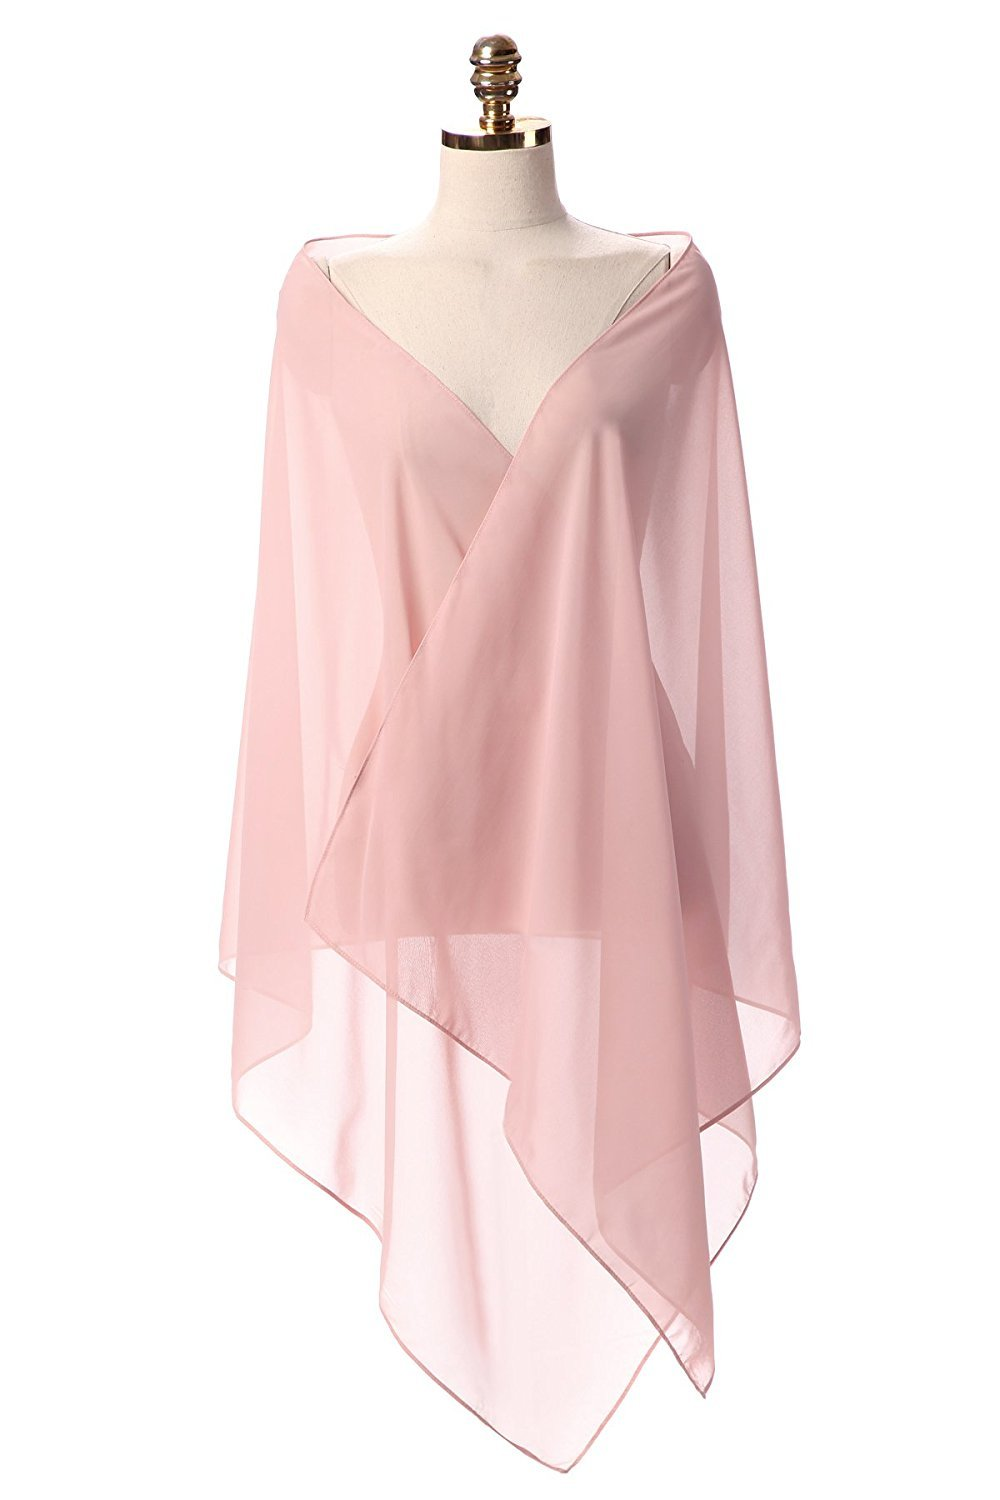 Sunnygirls Chiffon Shawl for Dresses in Different Colors To Each Wedding Dress (Blush)